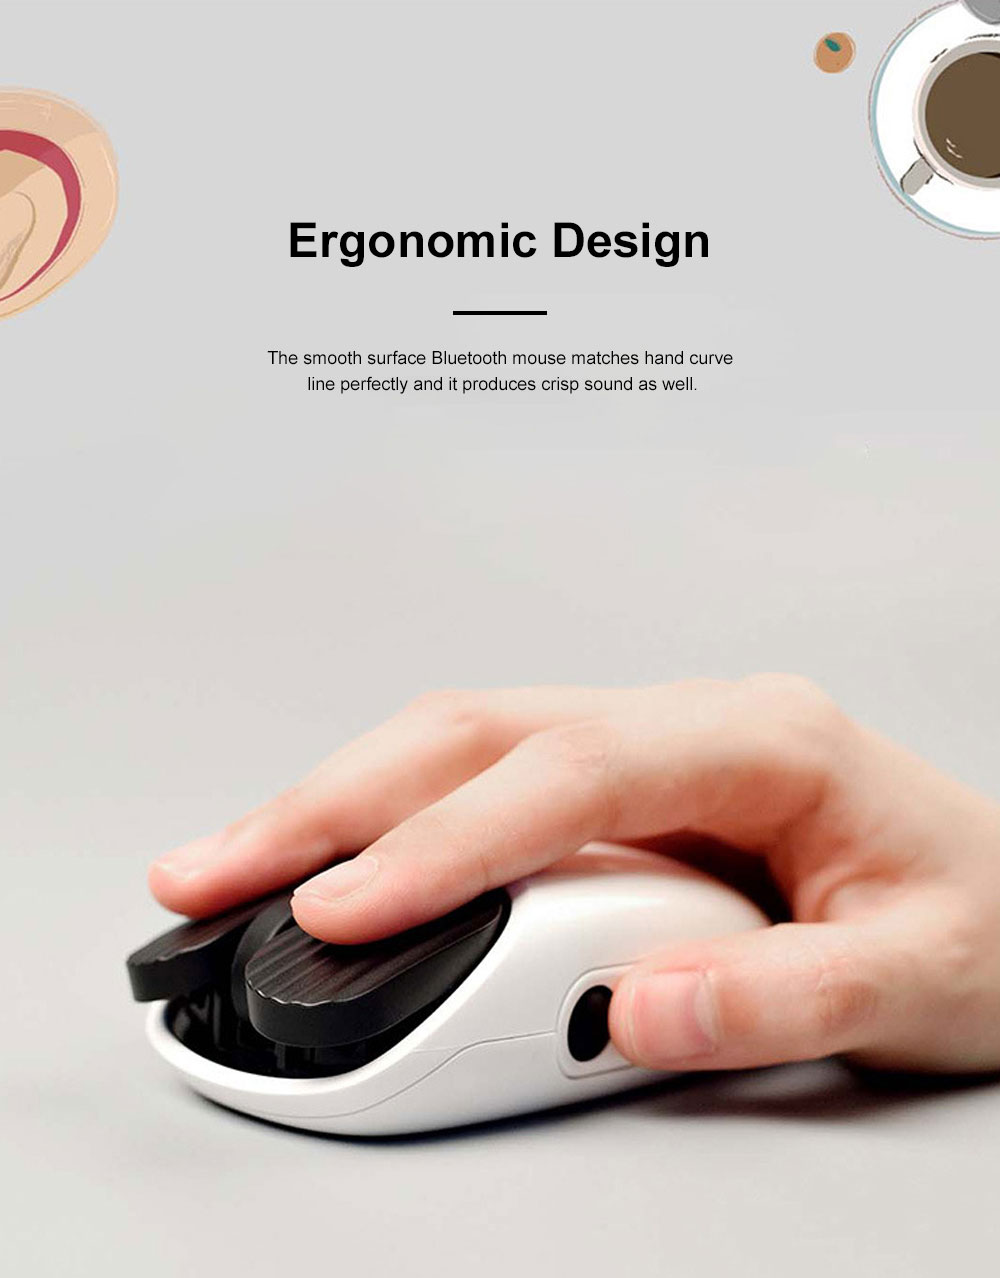 LOFREE New Arrival Bluetooth Mouse for Office Gaming Use Wireless Nordic Bluetooth Chip Optical Mouse Dual Connection Mode Mouse 2